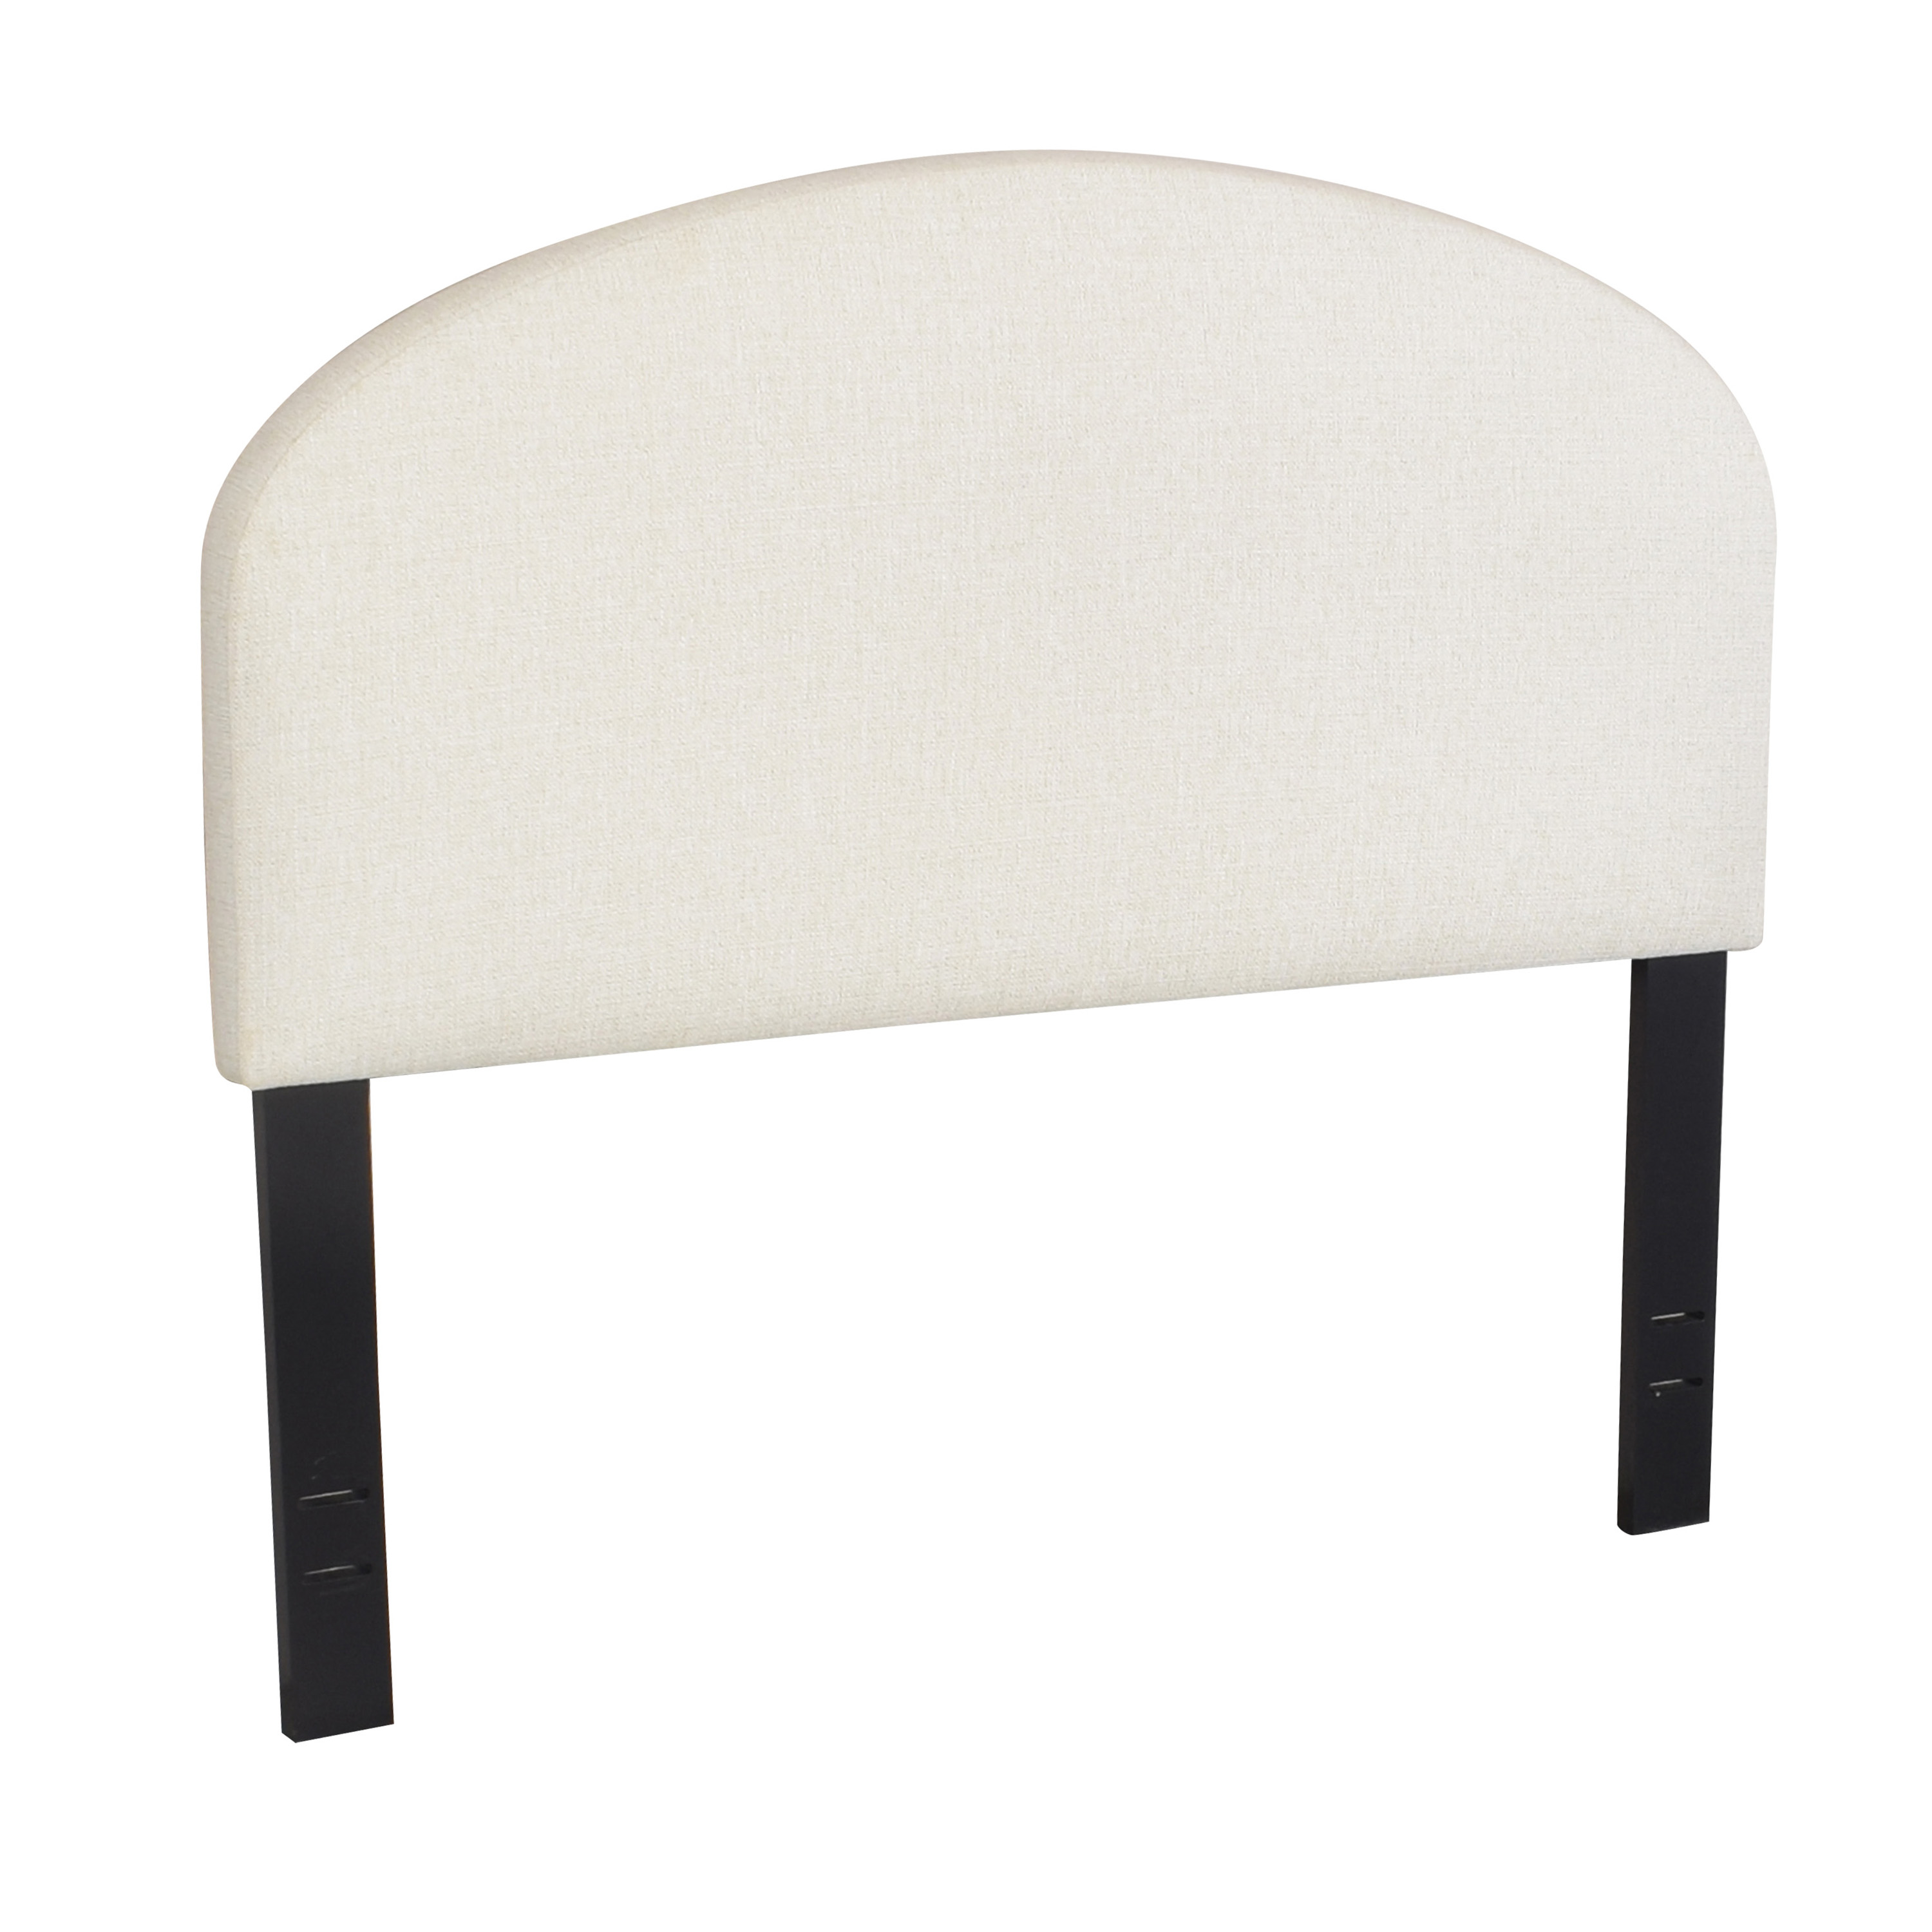 West Elm West Elm Curved Headboard second hand